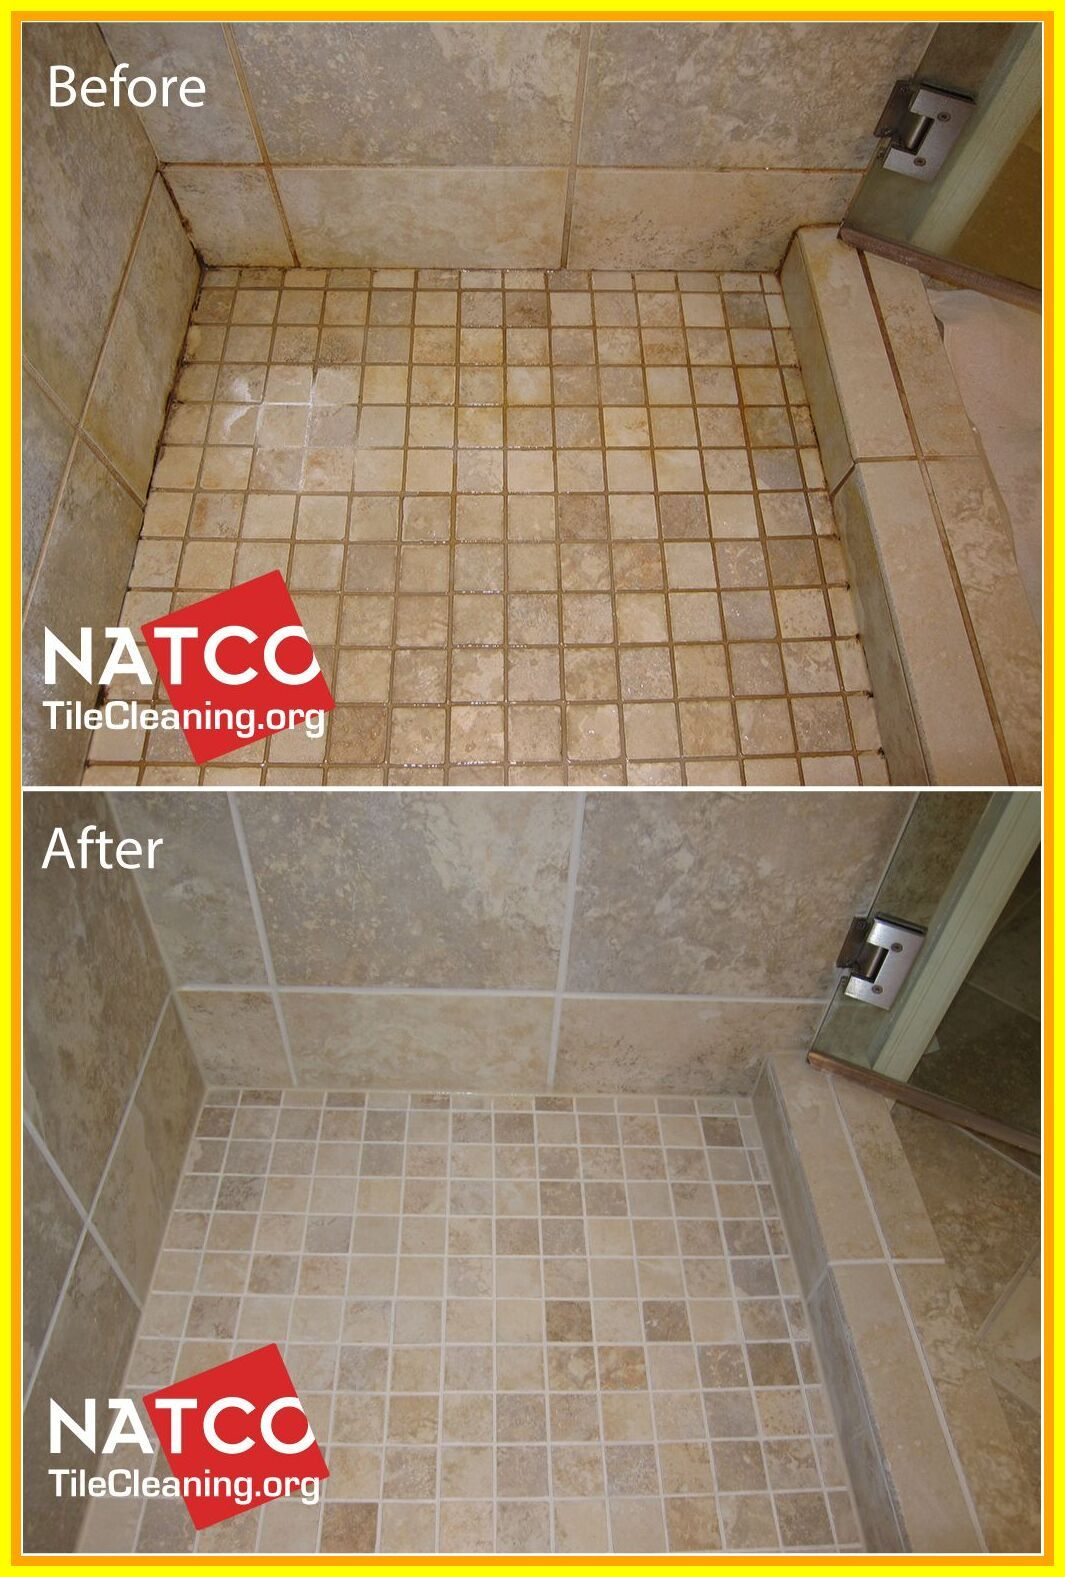 How I Transformed My Bathroom Floors For Under 12 Clean Bathroom Floor Cleaning Bathroom Tiles Bathroom Cleaning